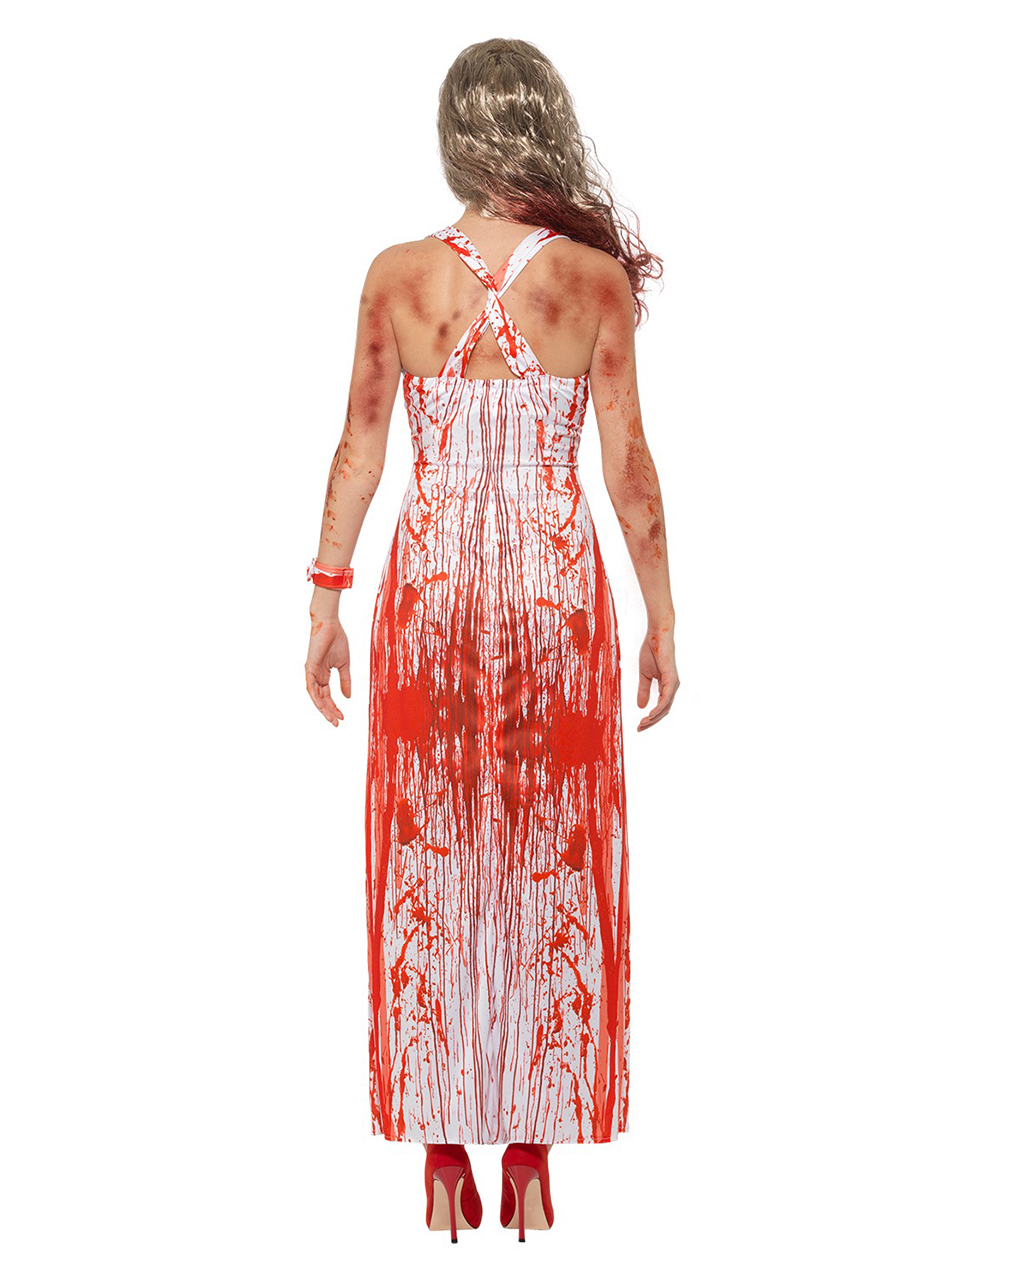 Bloody Prom Queen Costume for Halloween parties | horror-shop.com